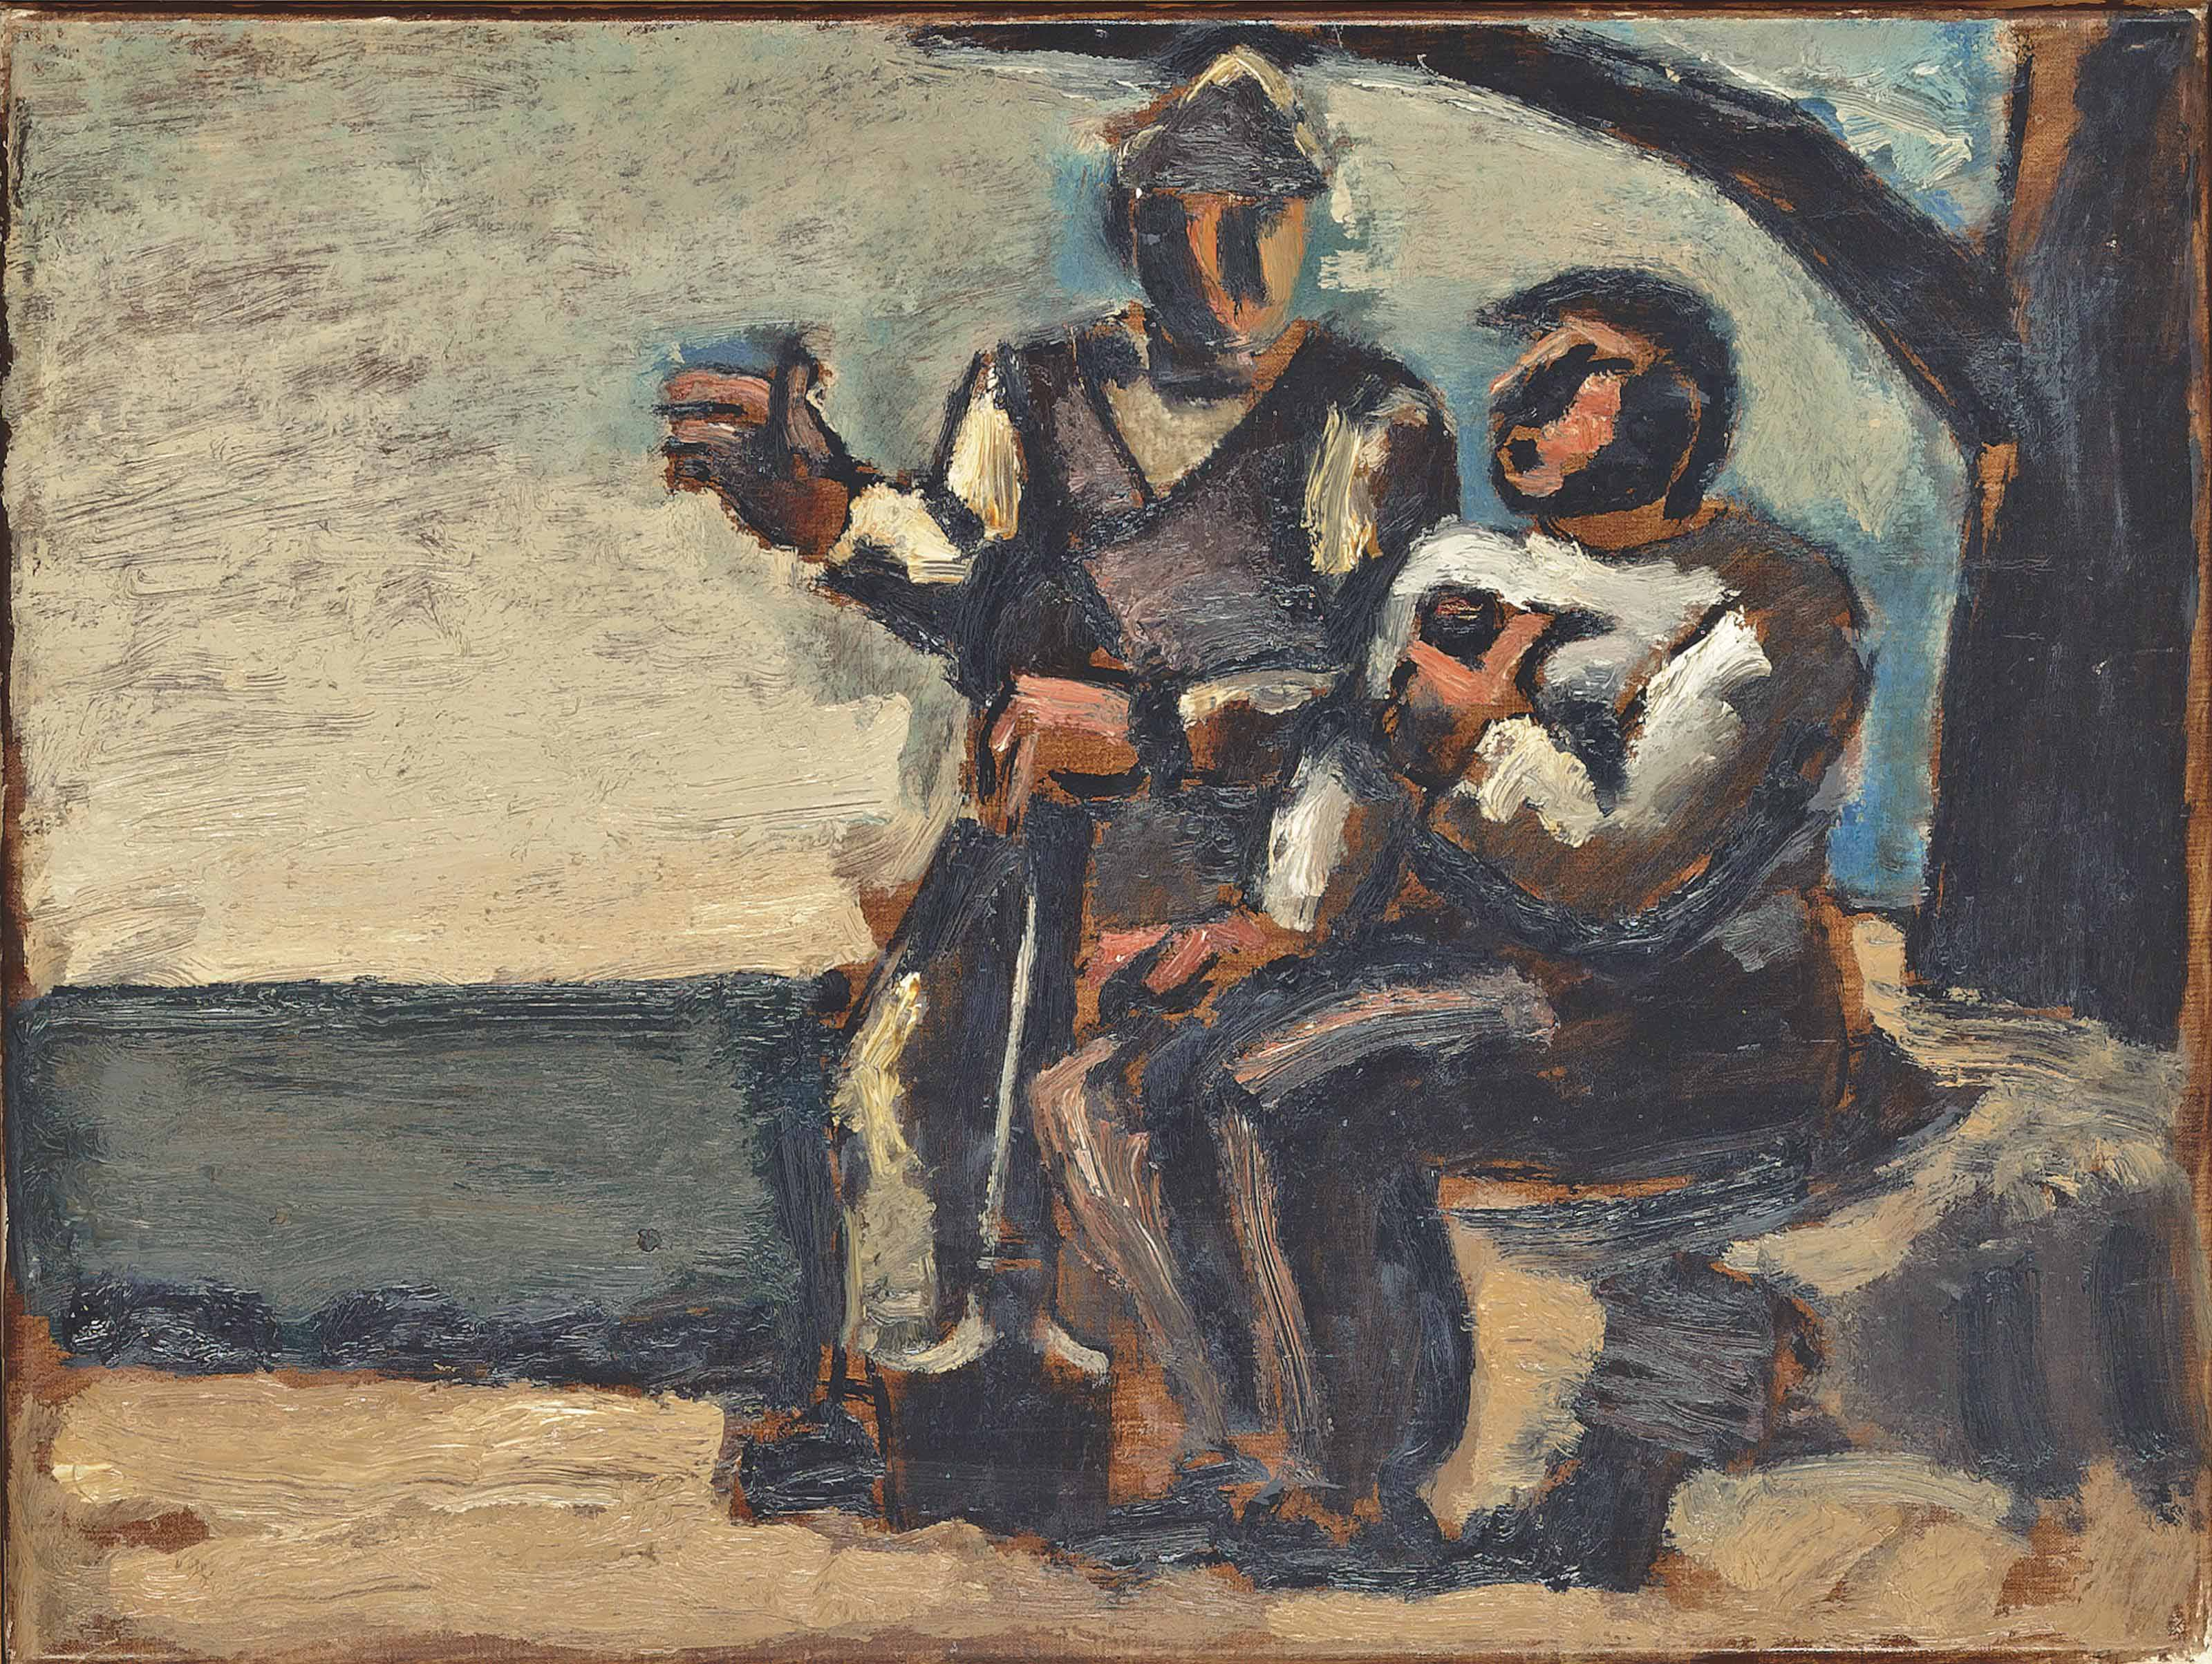 Two workmen sitting under a tree